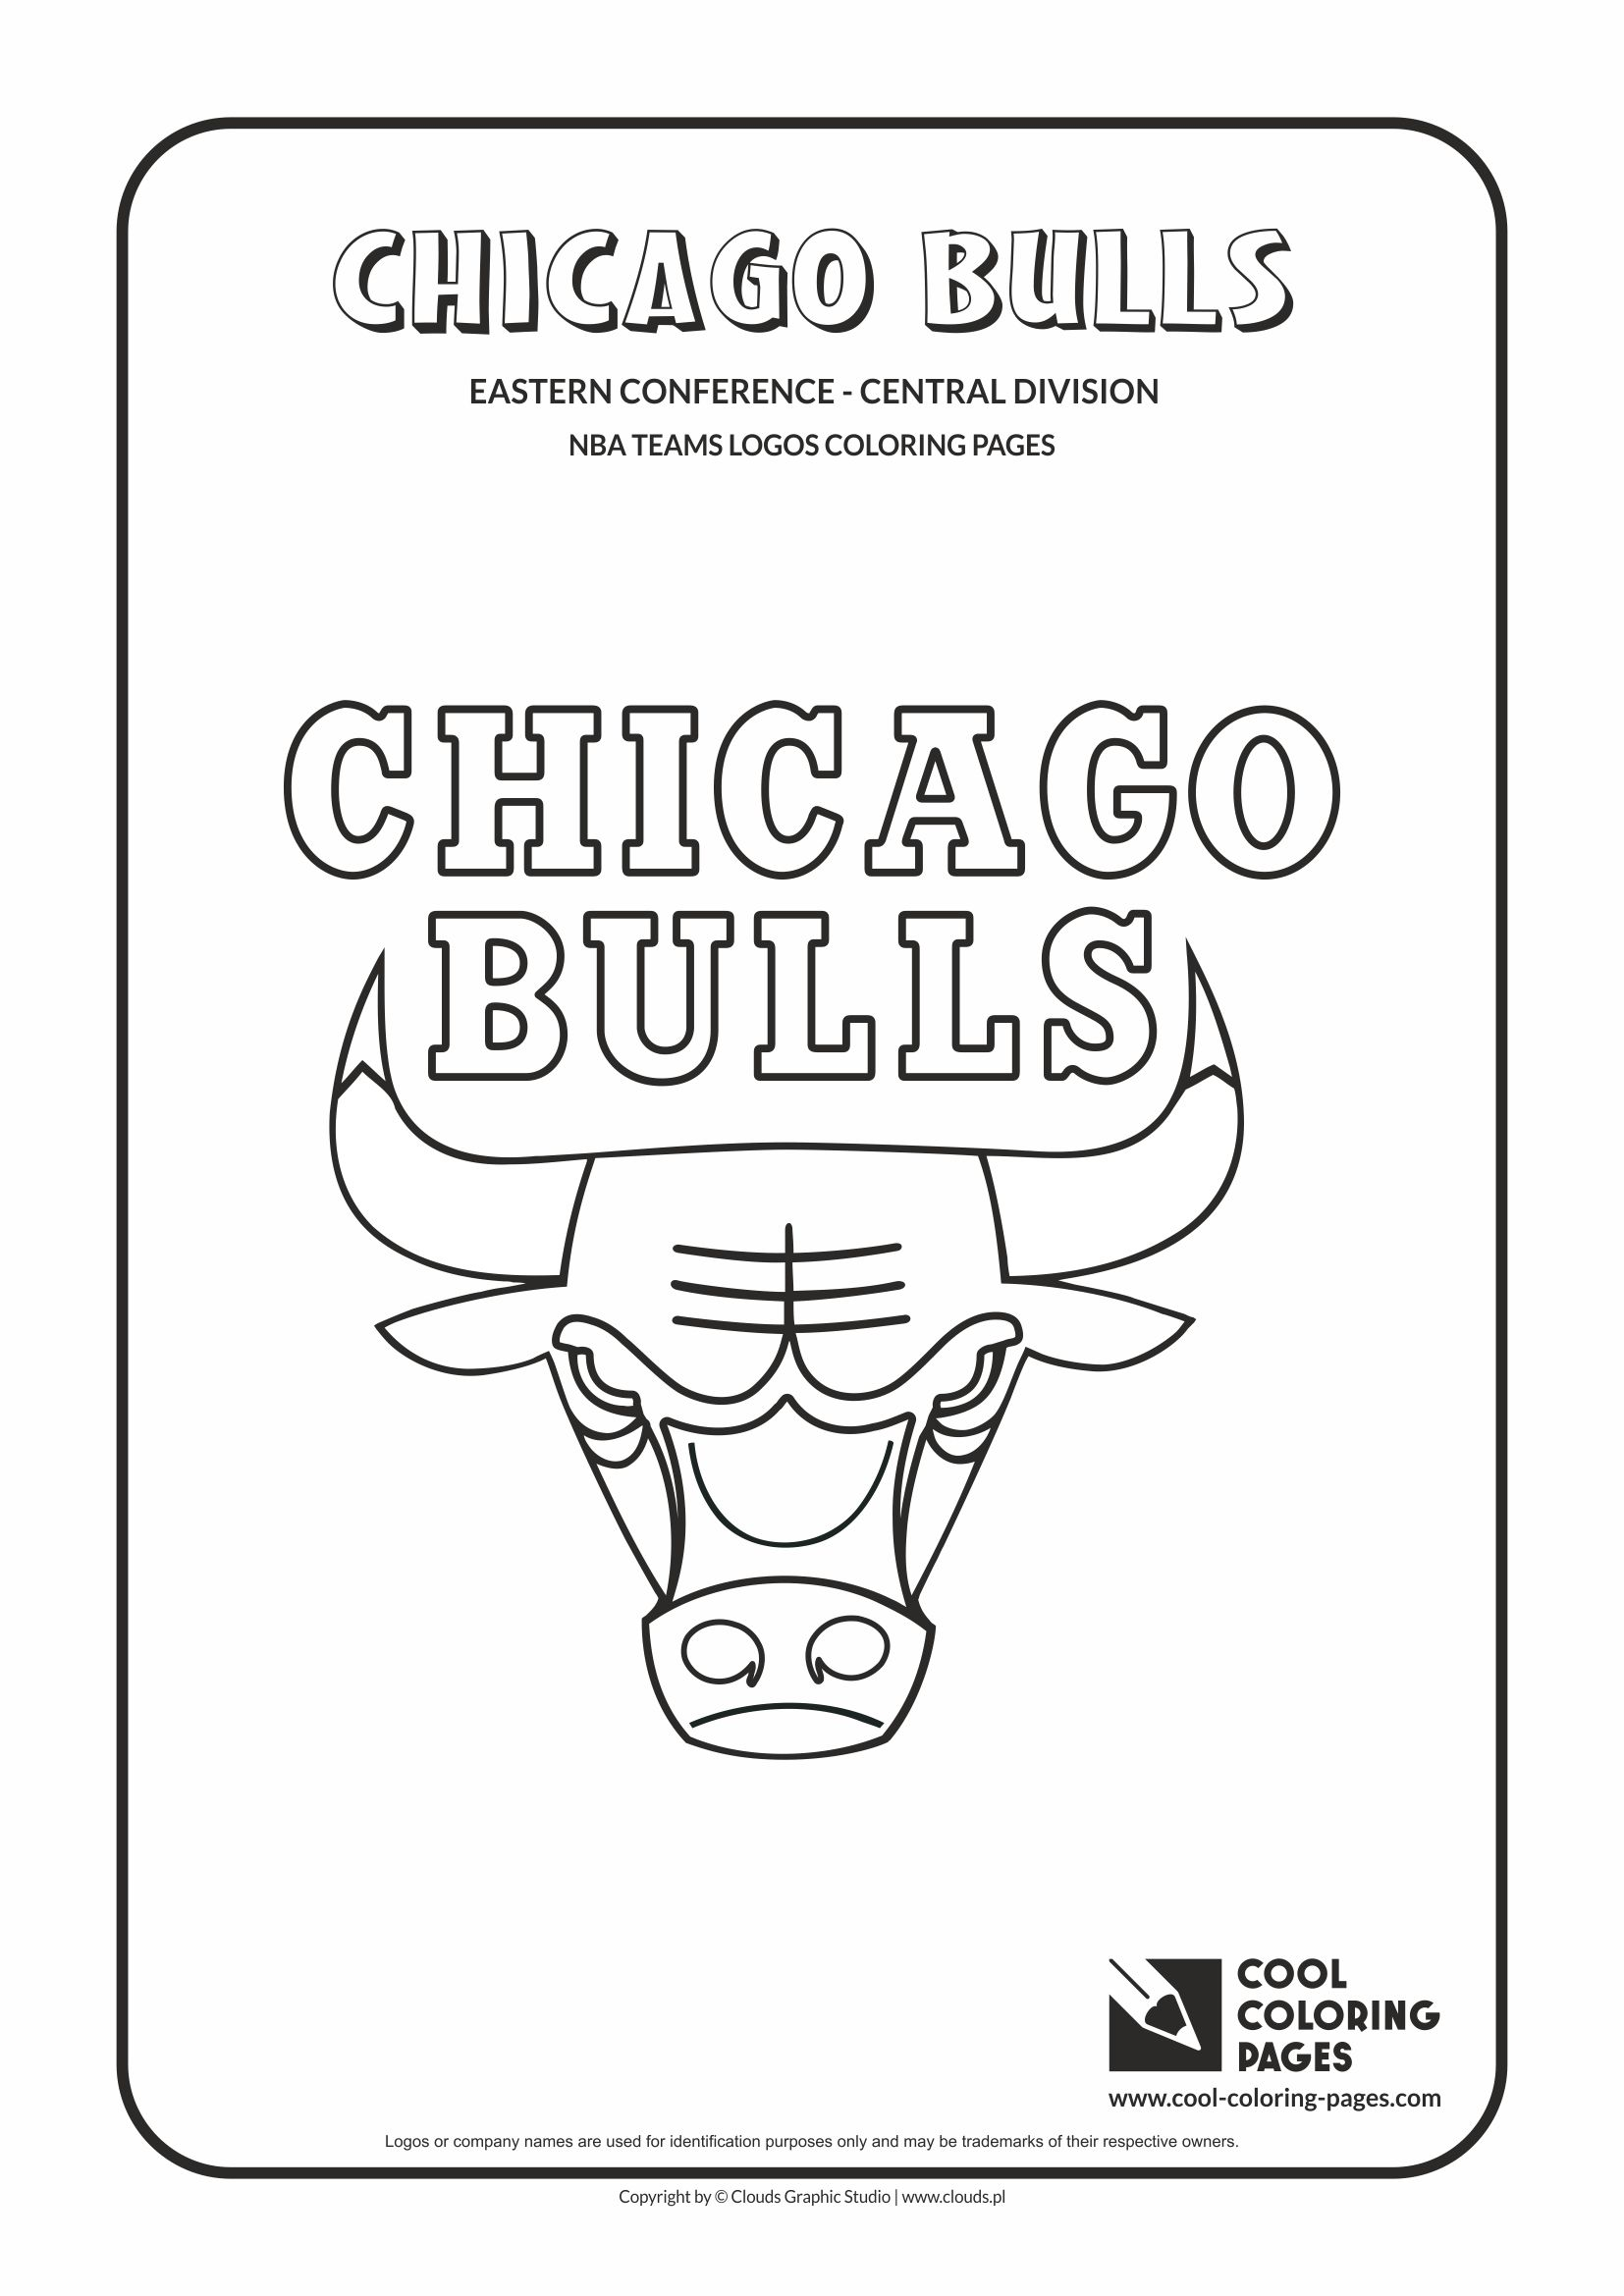 Cool Coloring Pages Chicago Bulls Nba Basketball Teams Logos Coloring Pages Cool Coloring Pages Free Educational Coloring Pages And Activities For Kids